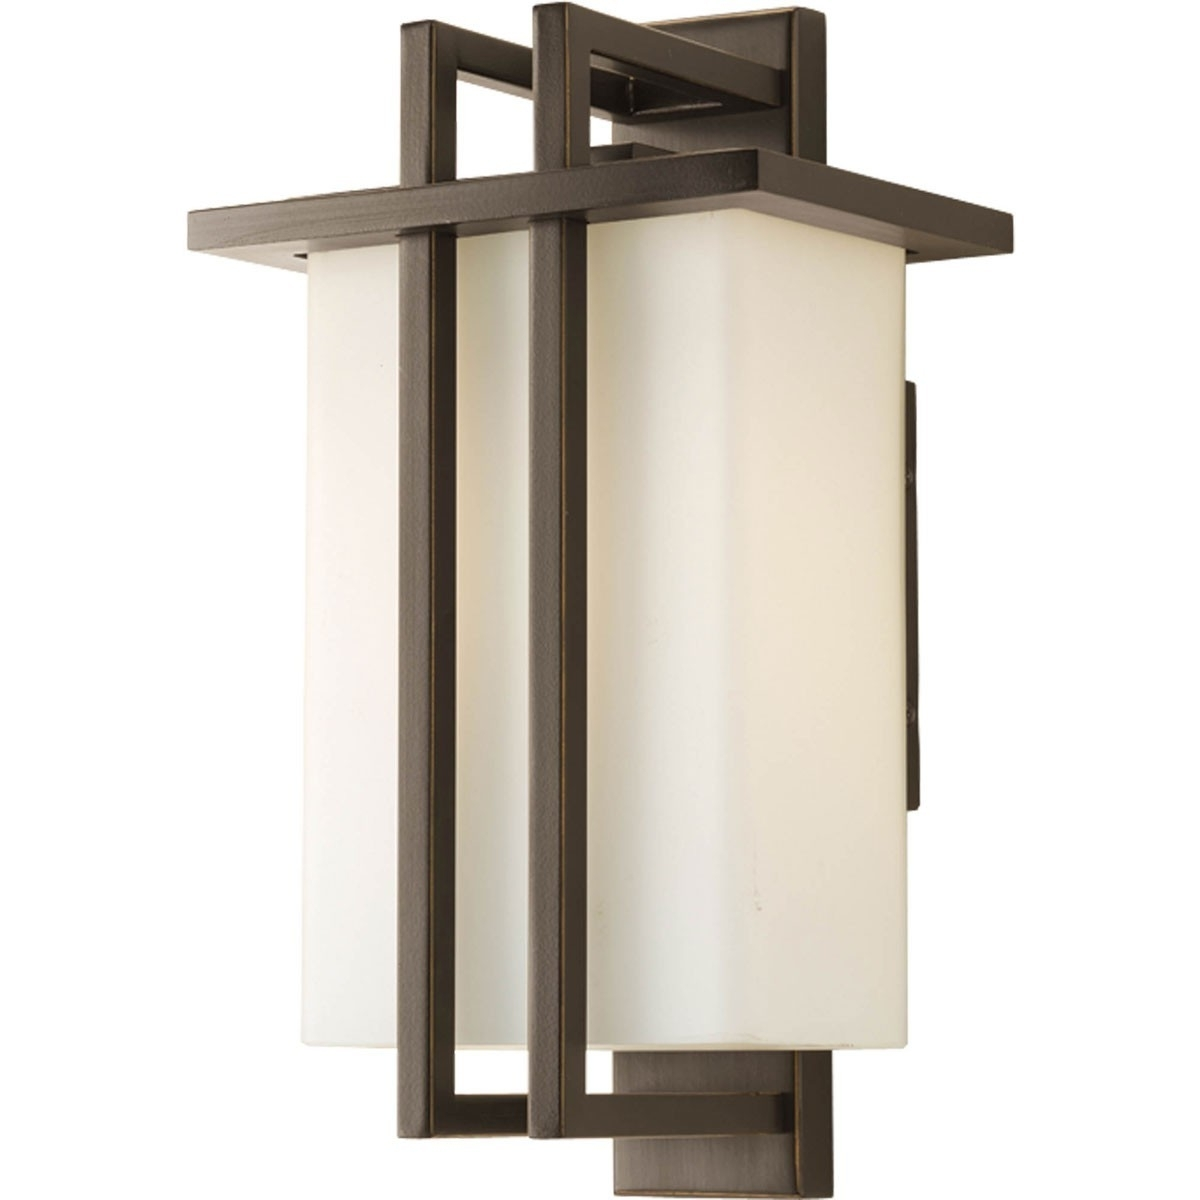 Outdoor Hanging Wall Lanterns Throughout Well Known Outdoor Small Hanging Lantern Light Fixture – Progress Lighting (View 14 of 20)